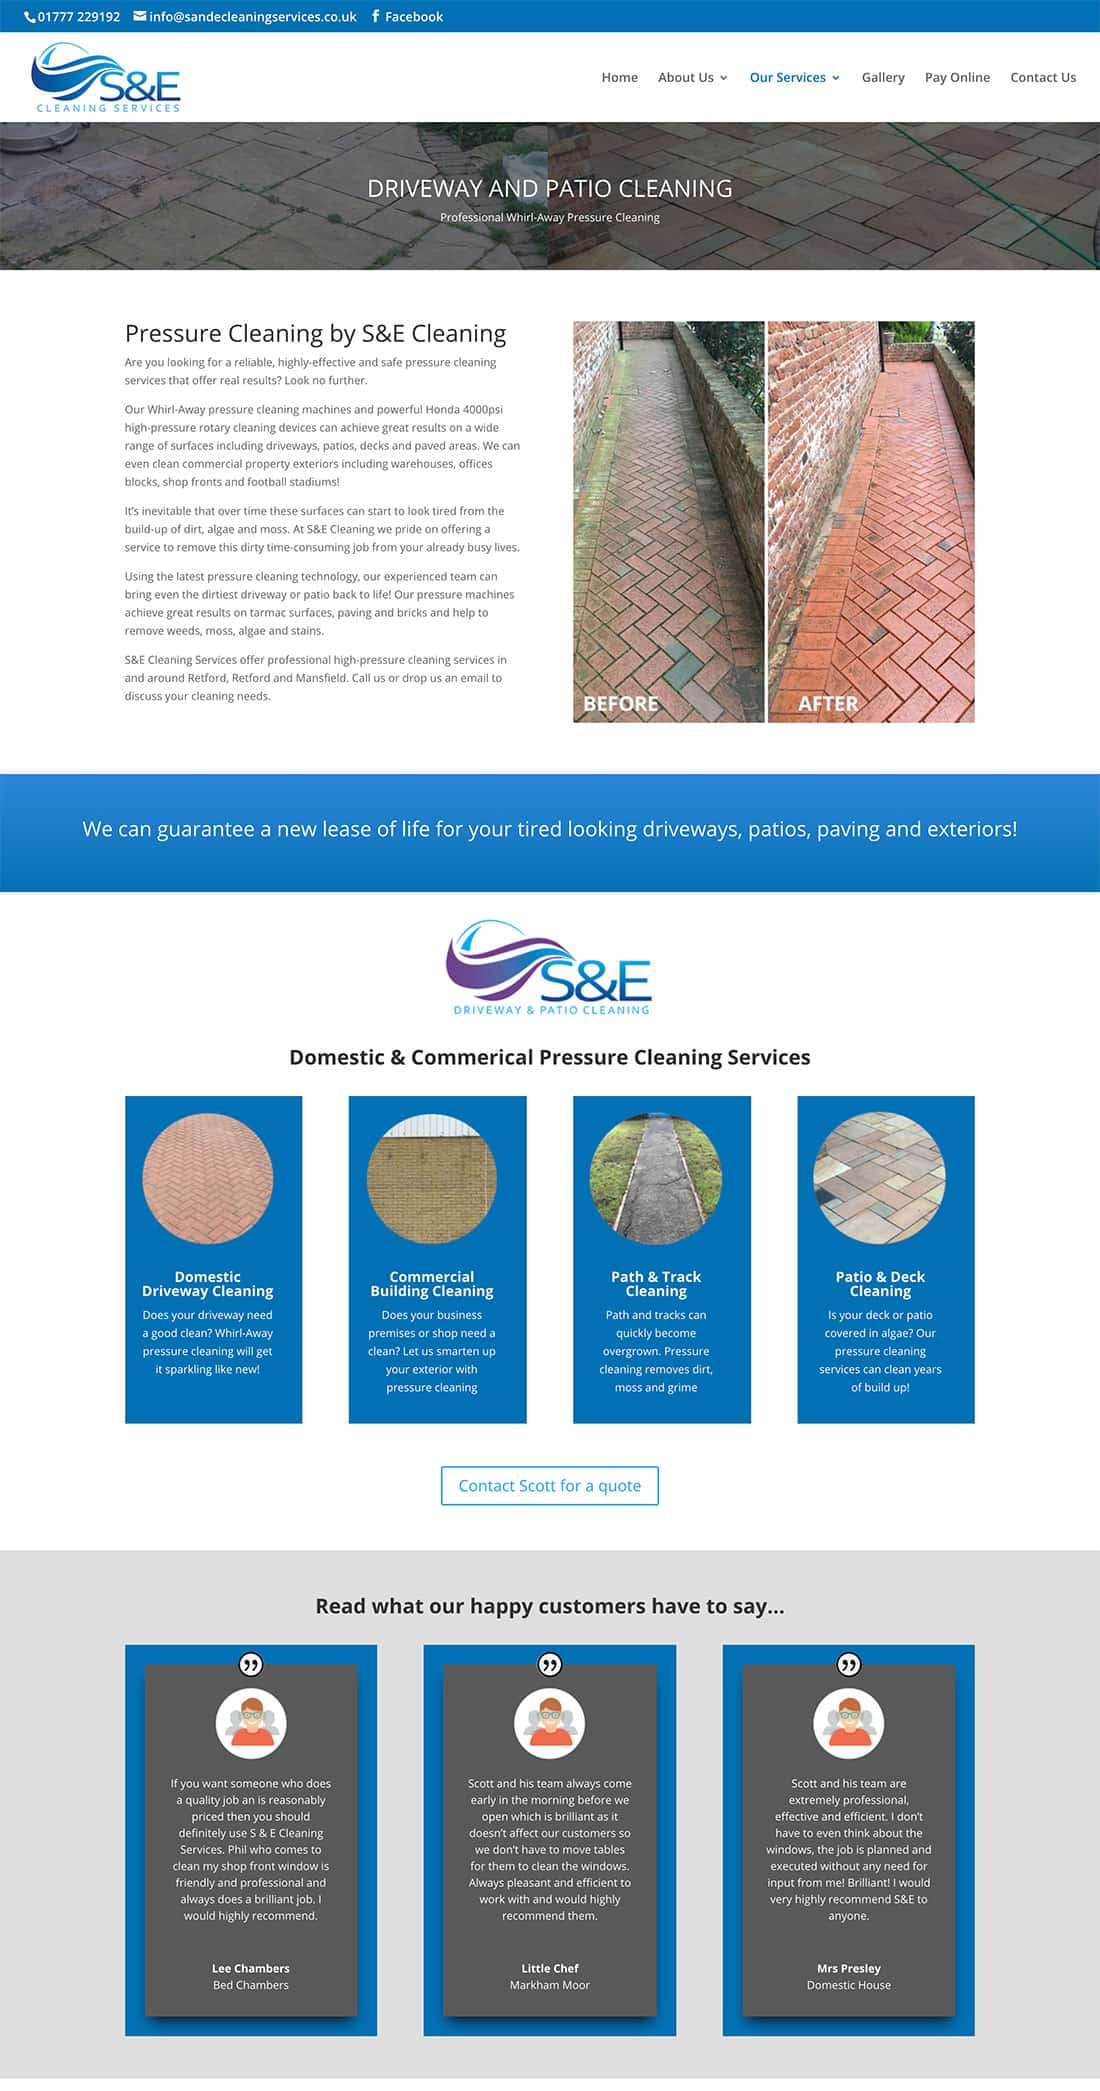 S & E Cleaning driveway & patio service page design